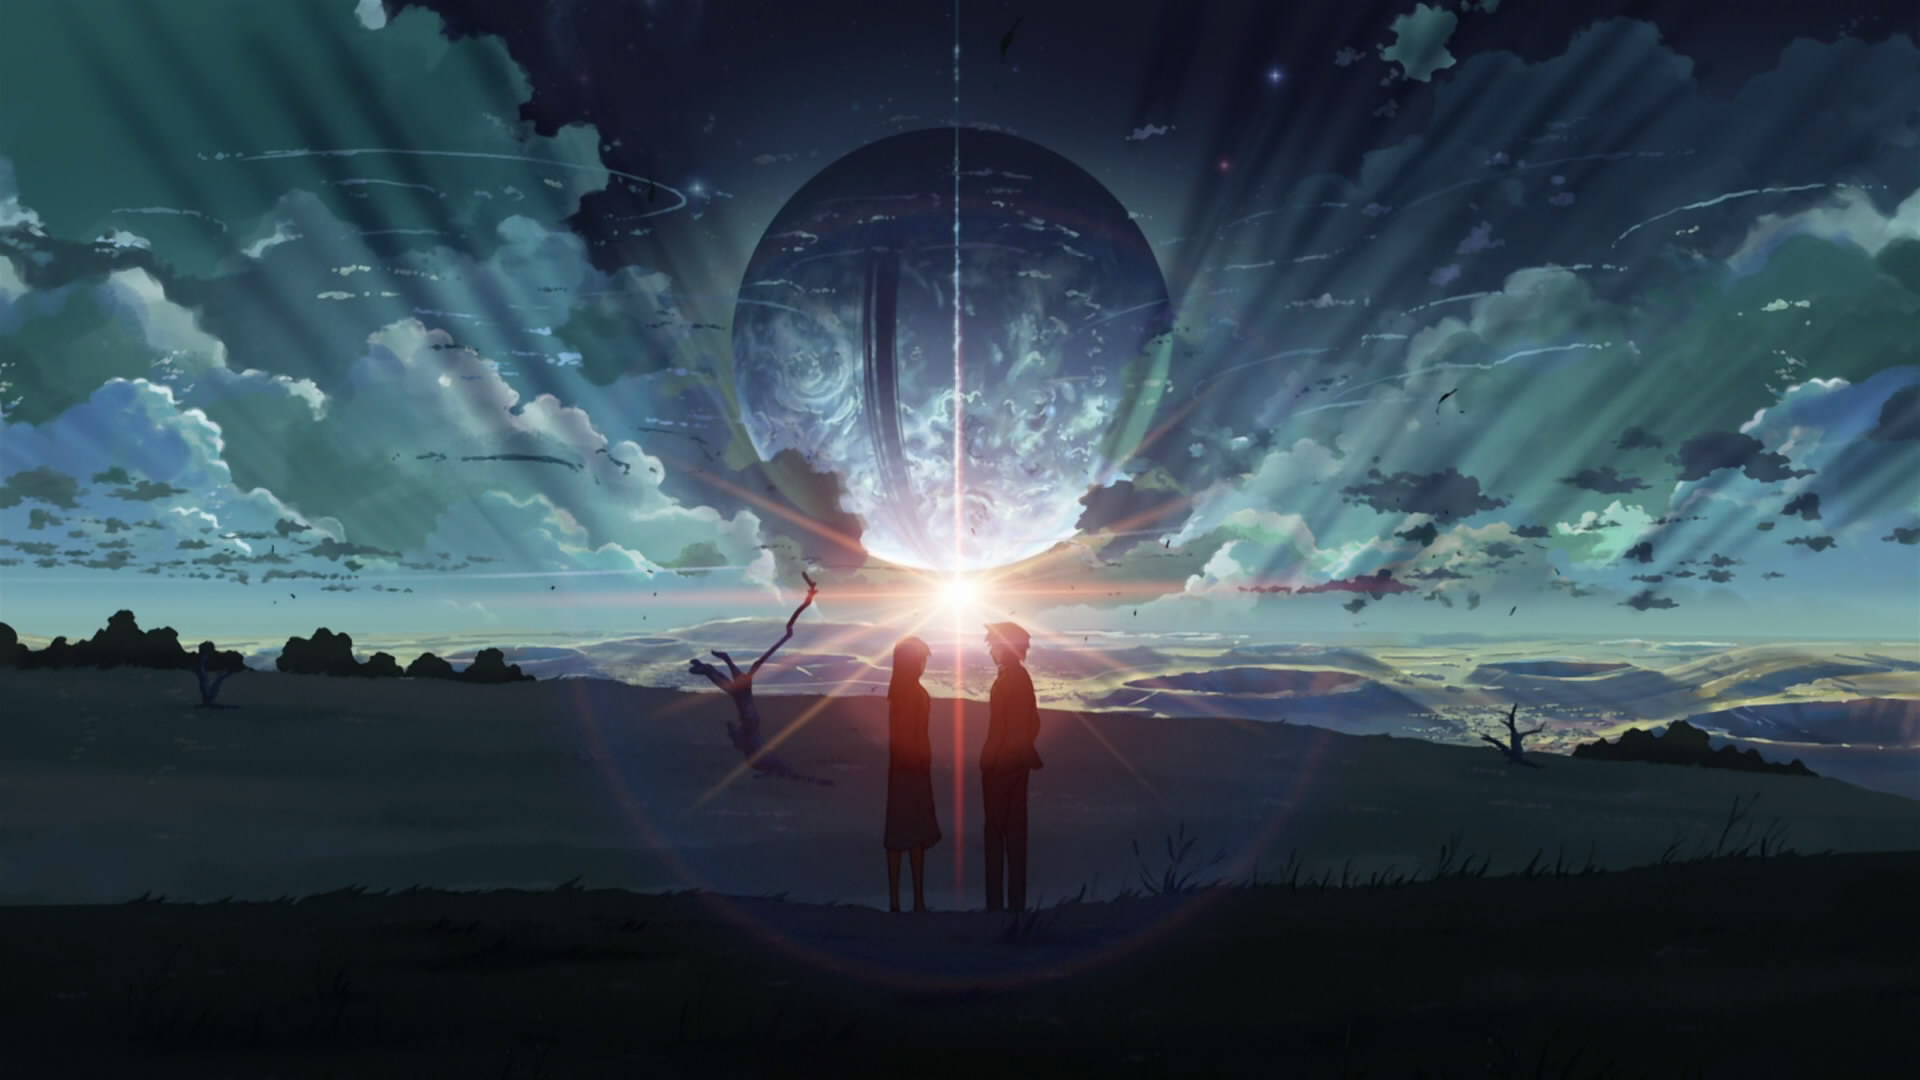 160 5 Centimeters Per Second HD Wallpapers Backgrounds Wallpaper Abyss